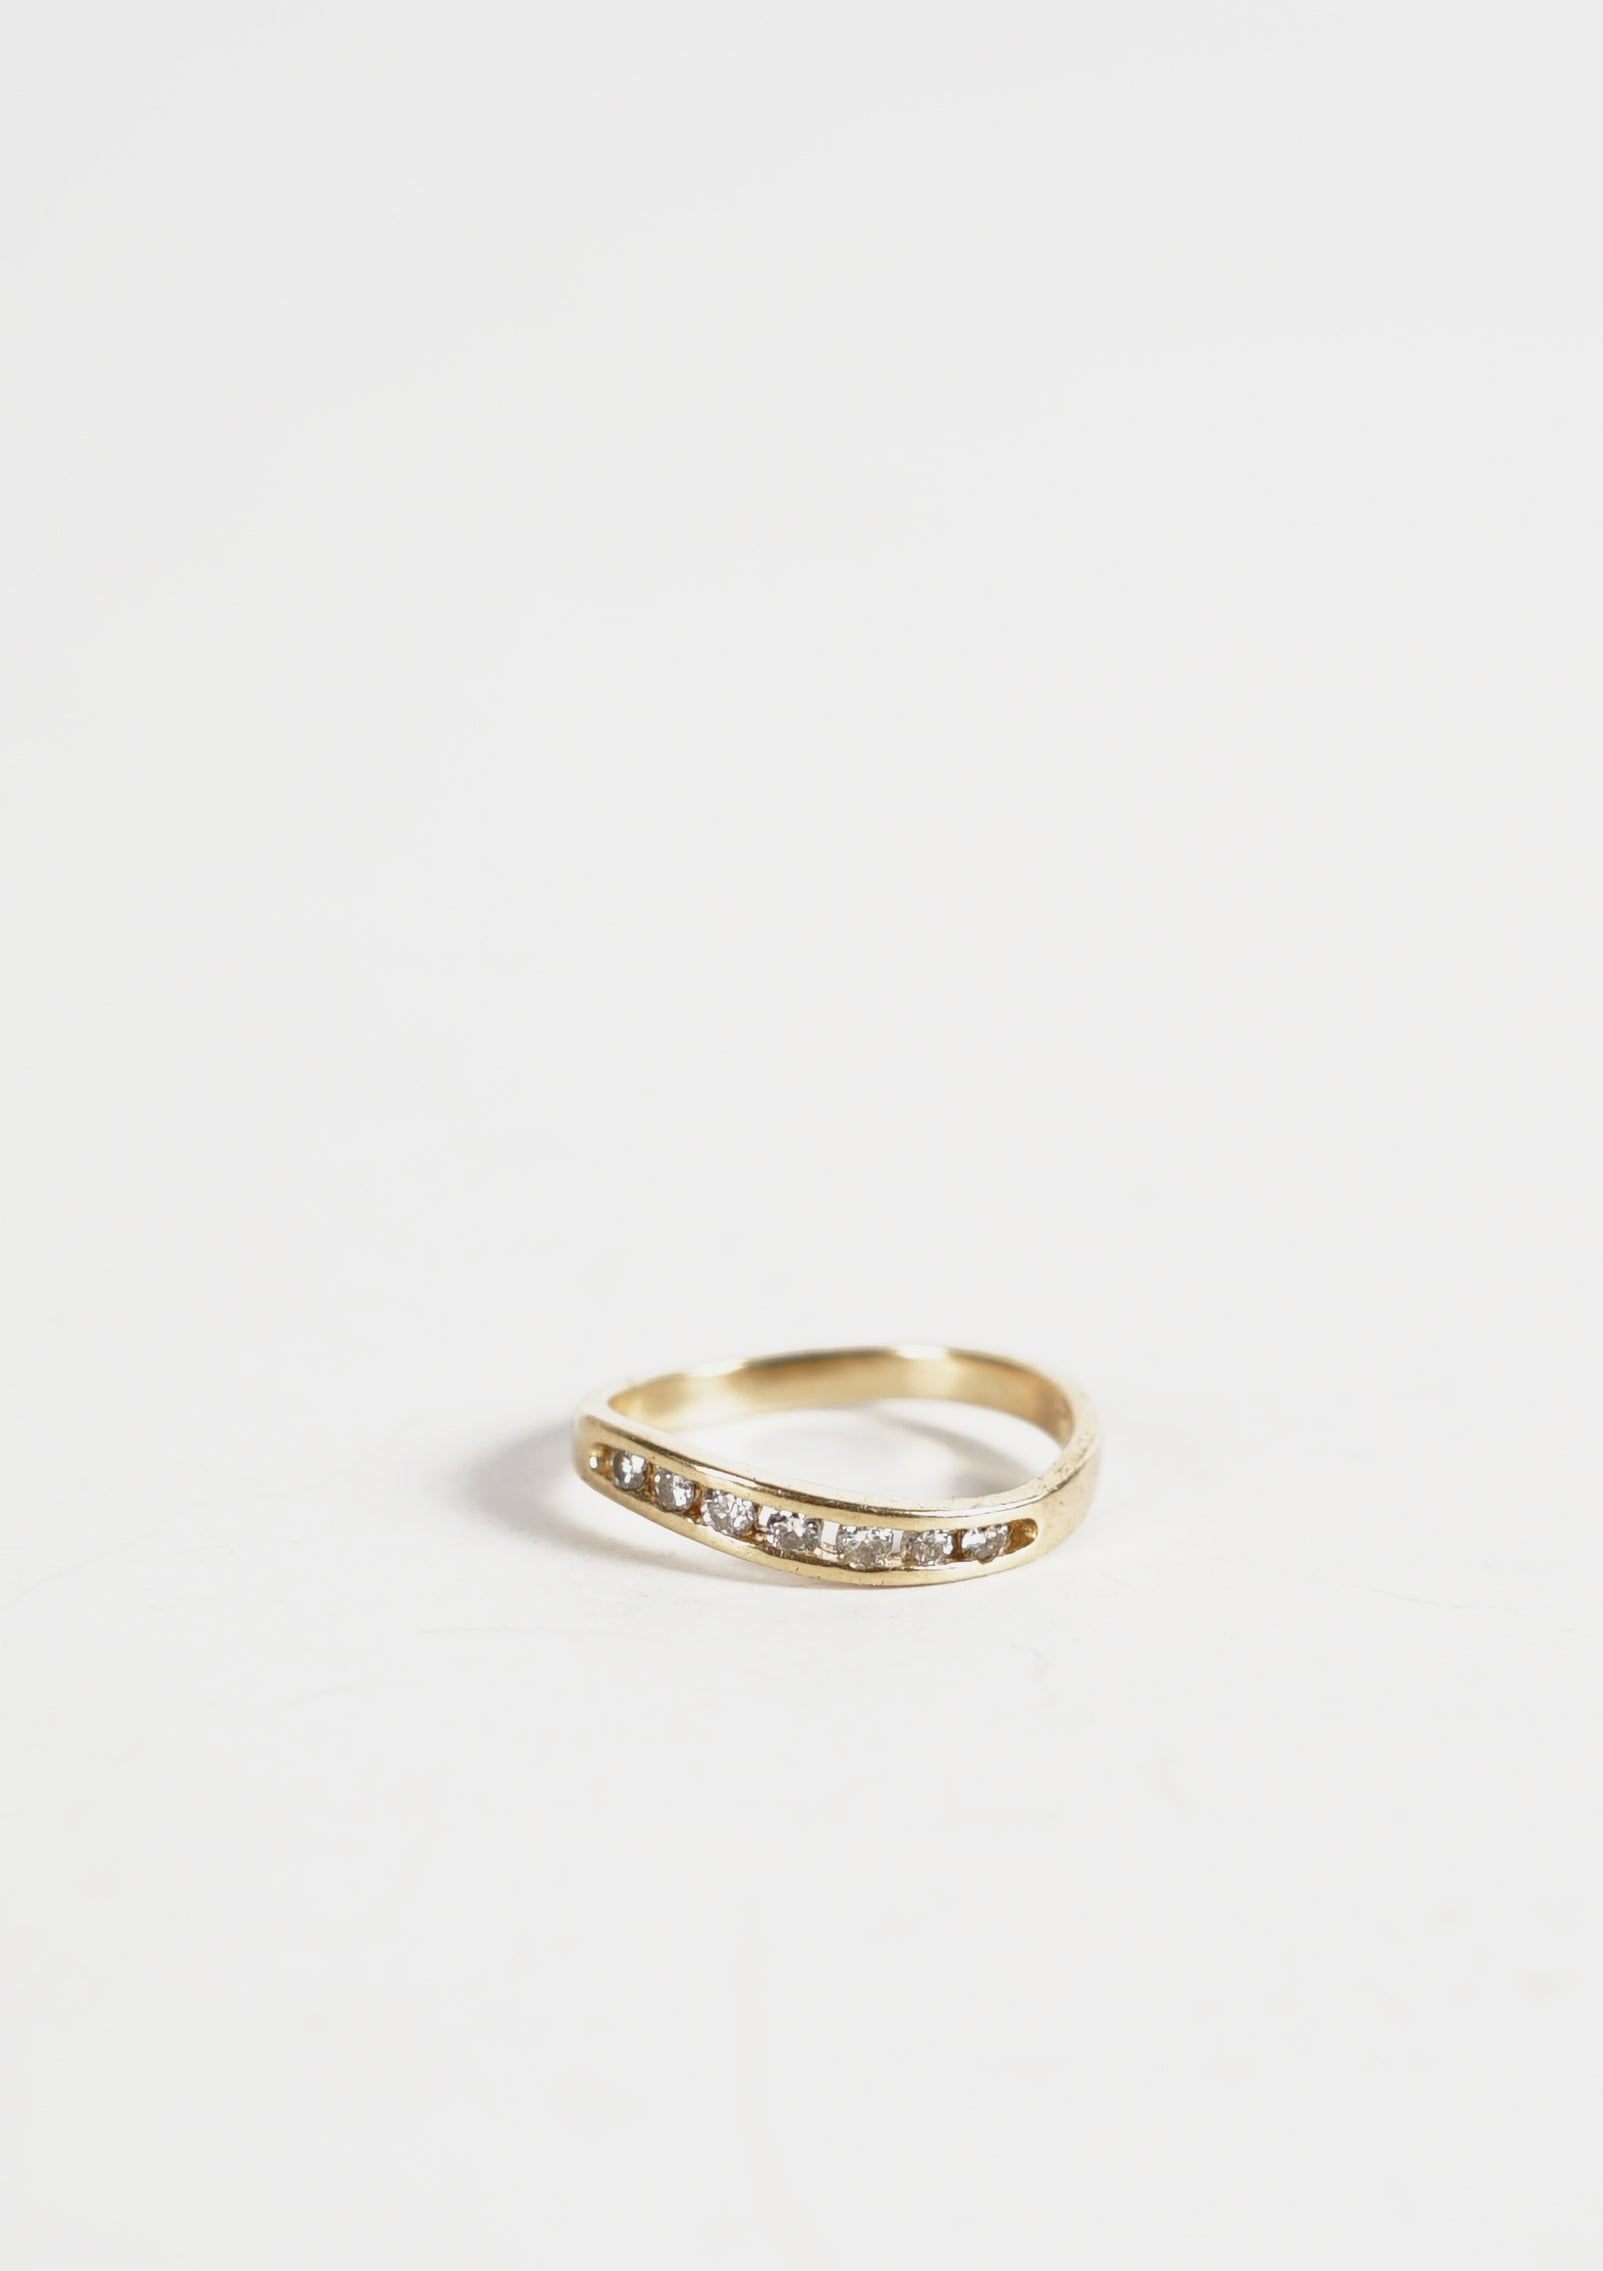 14k Wavy Gold Ring / 2mm